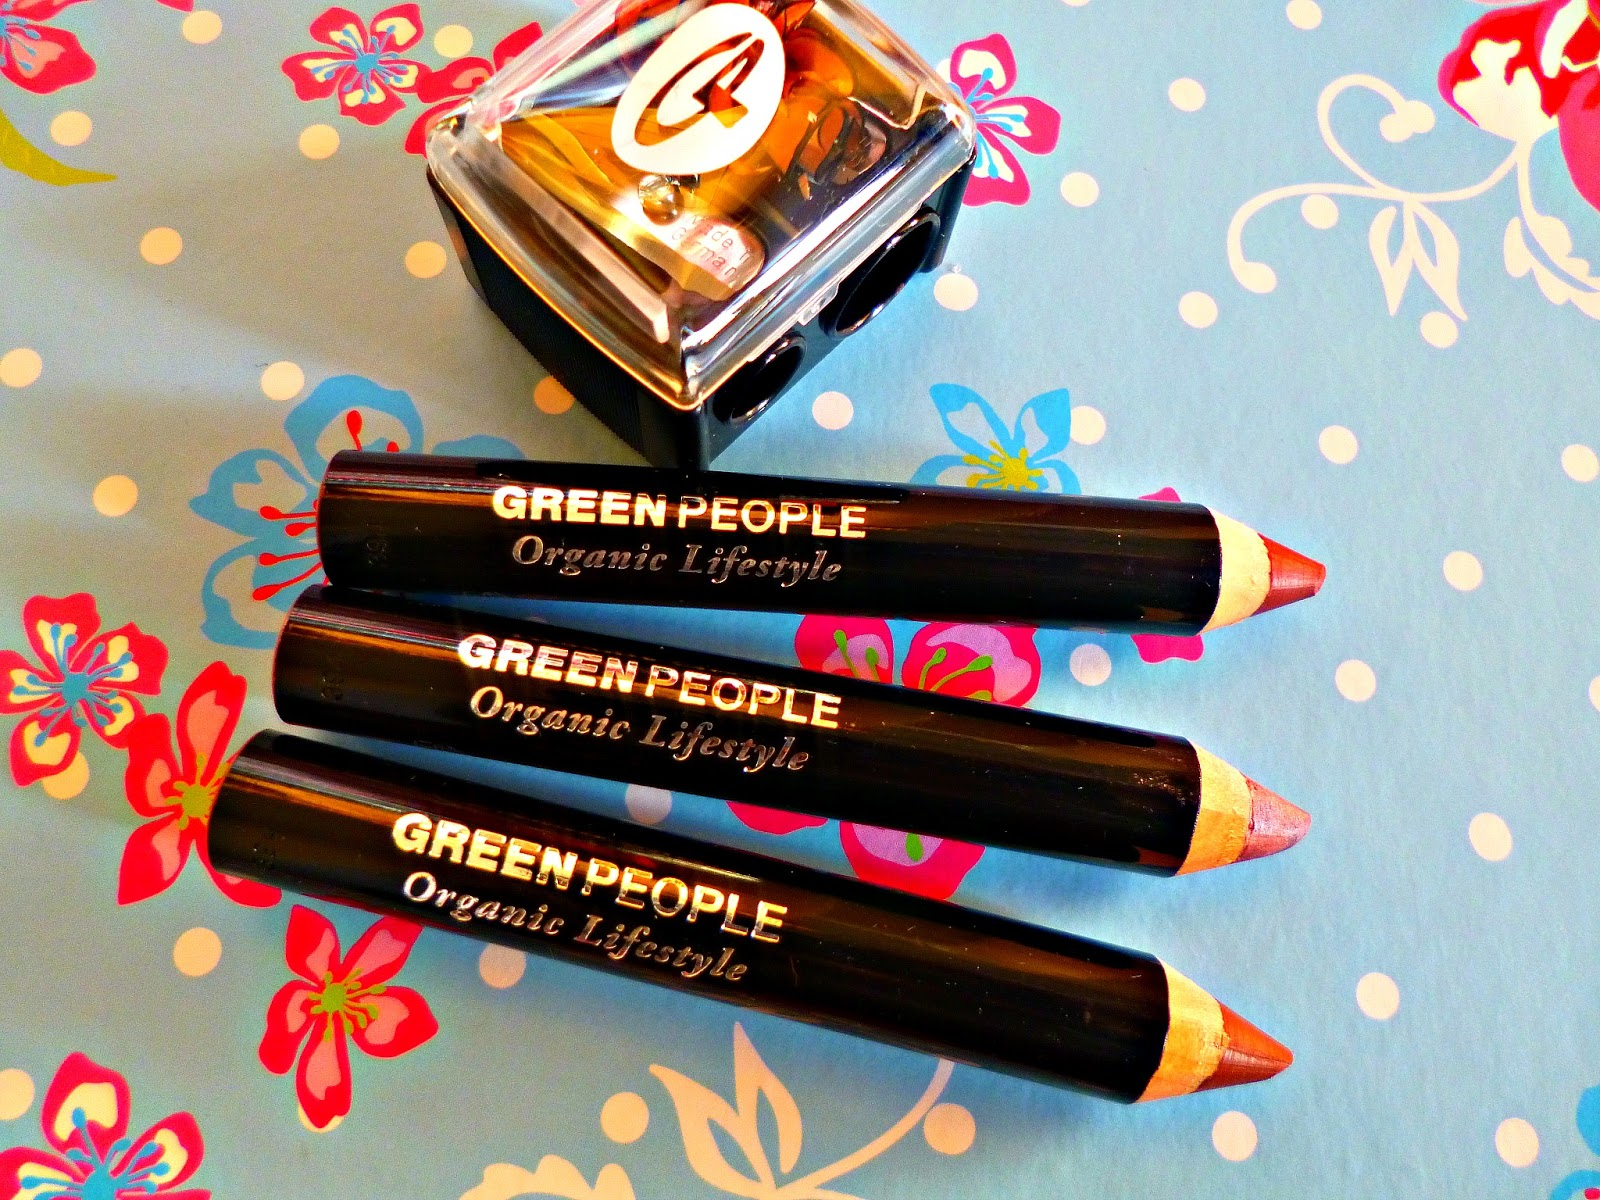 New in: Green People instant definition lip crayons and make up look